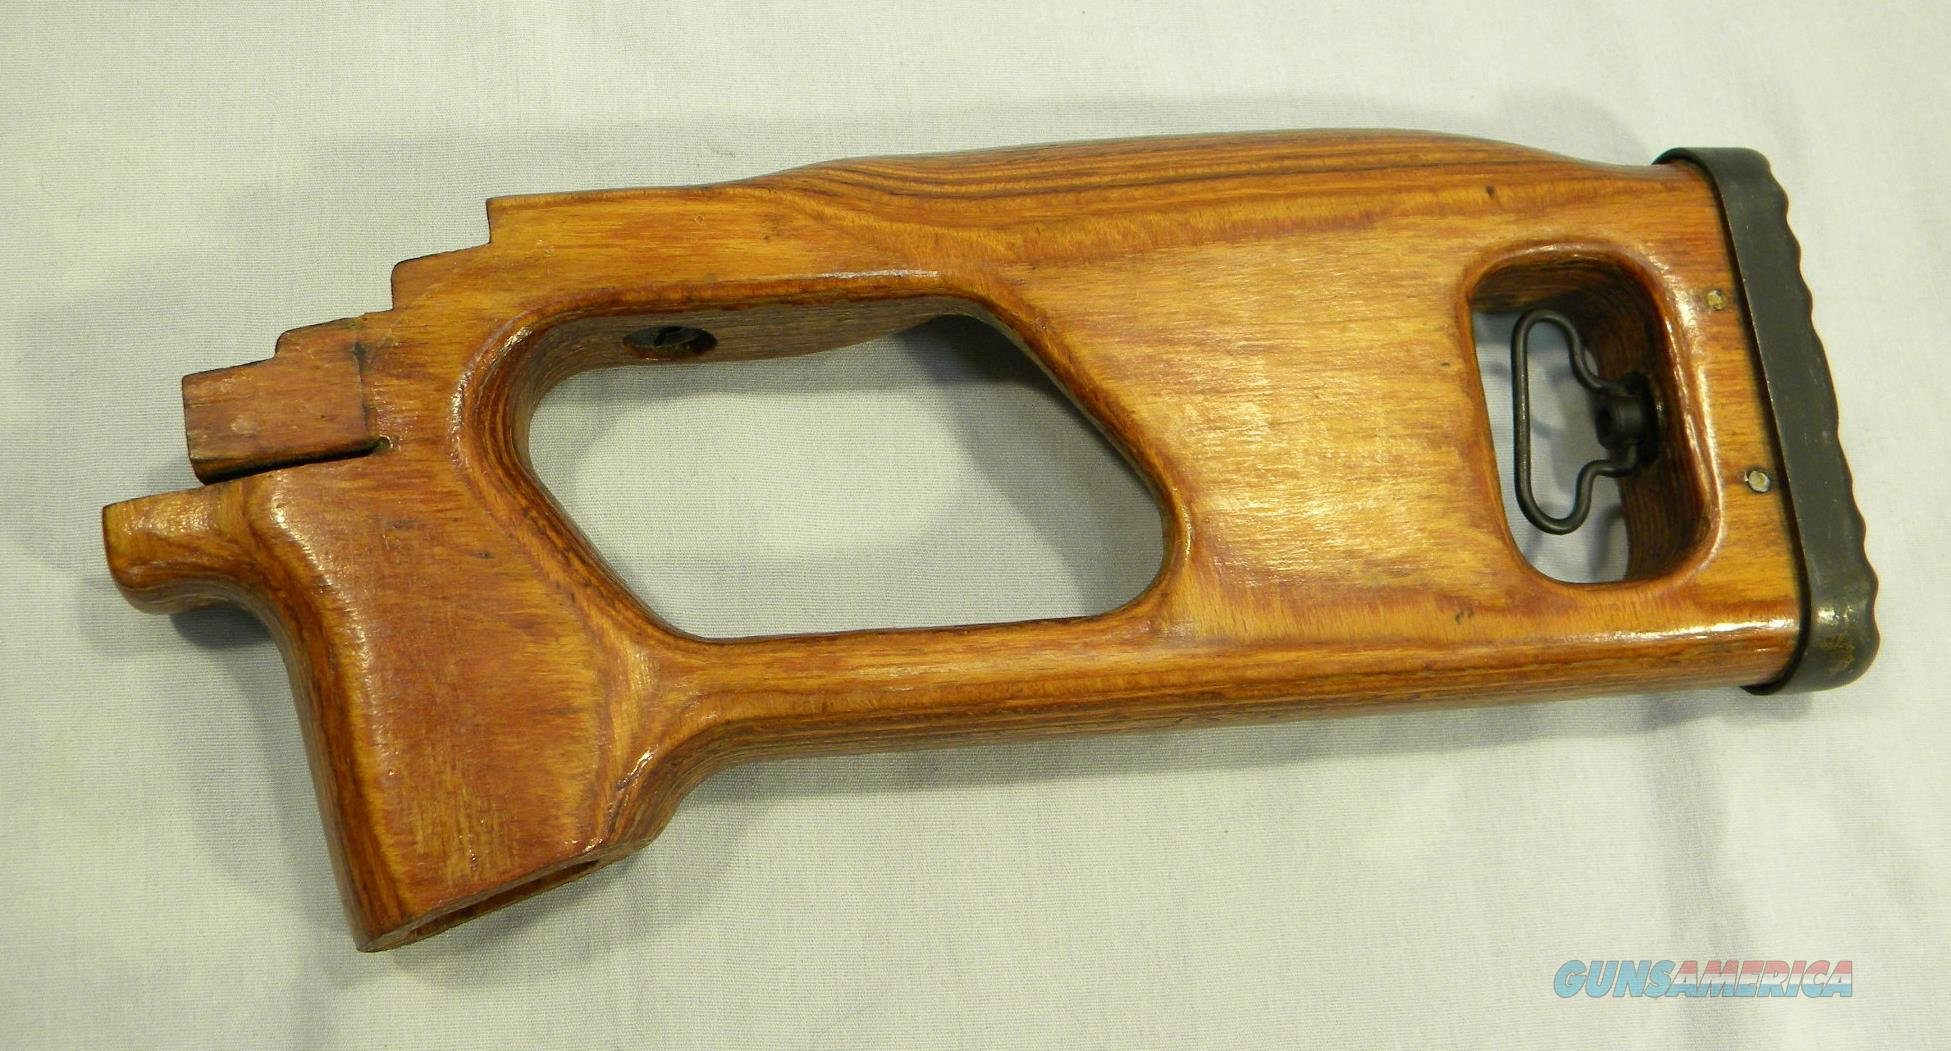 Laminated Wood Stock For Dragunov PSL-54C, As-New  Non-Guns > Gunstocks, Grips & Wood